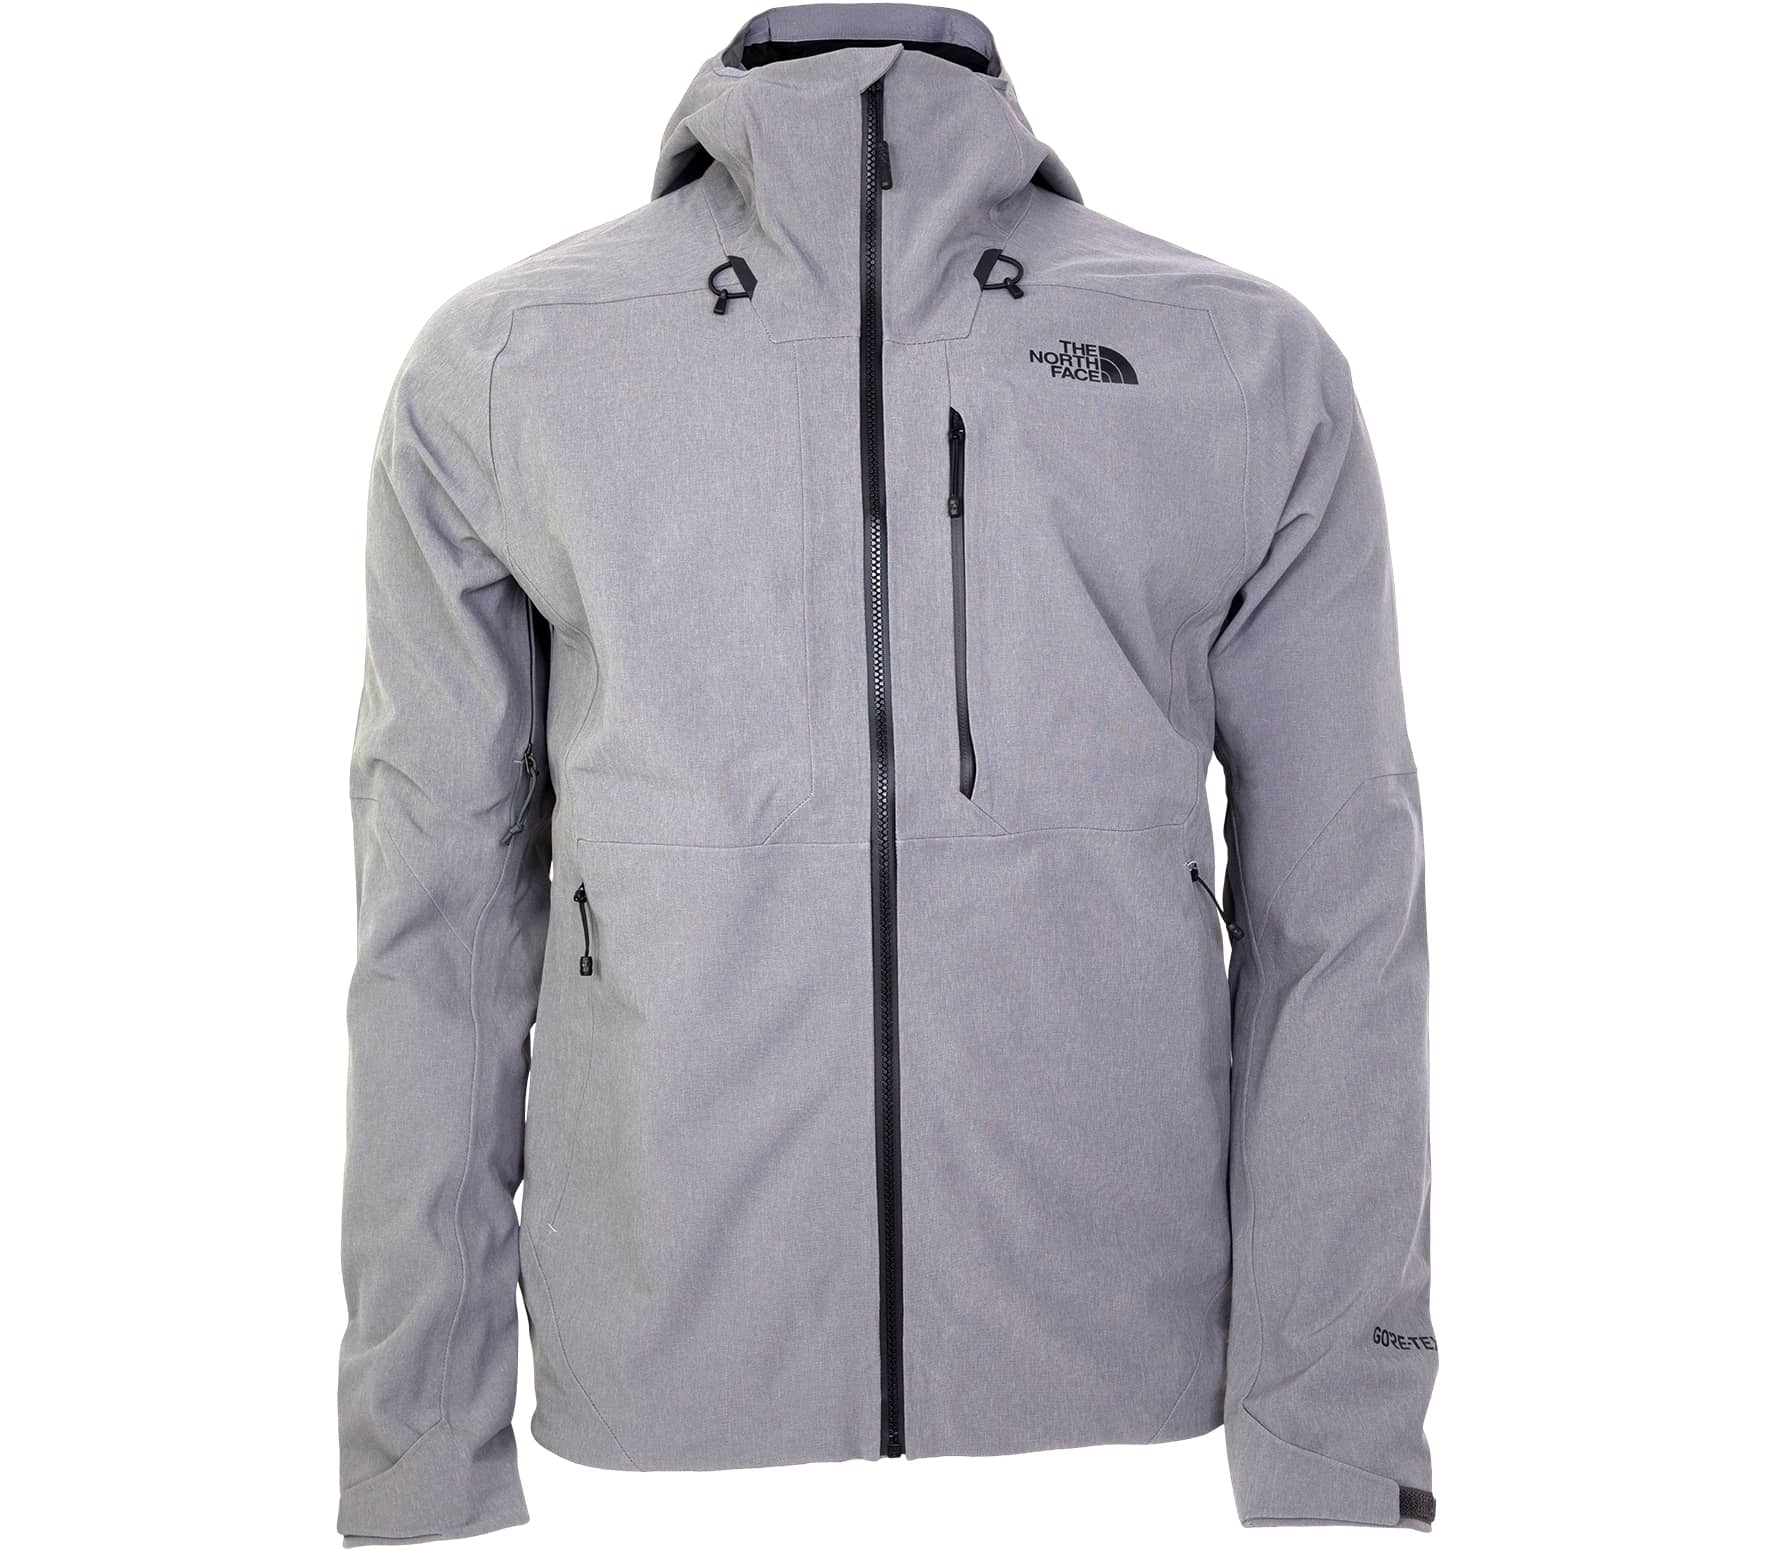 08a54d55d5fe The North Face - Apex Flex GTX® 2.0 men s Gore-Tex jacket (grey ...